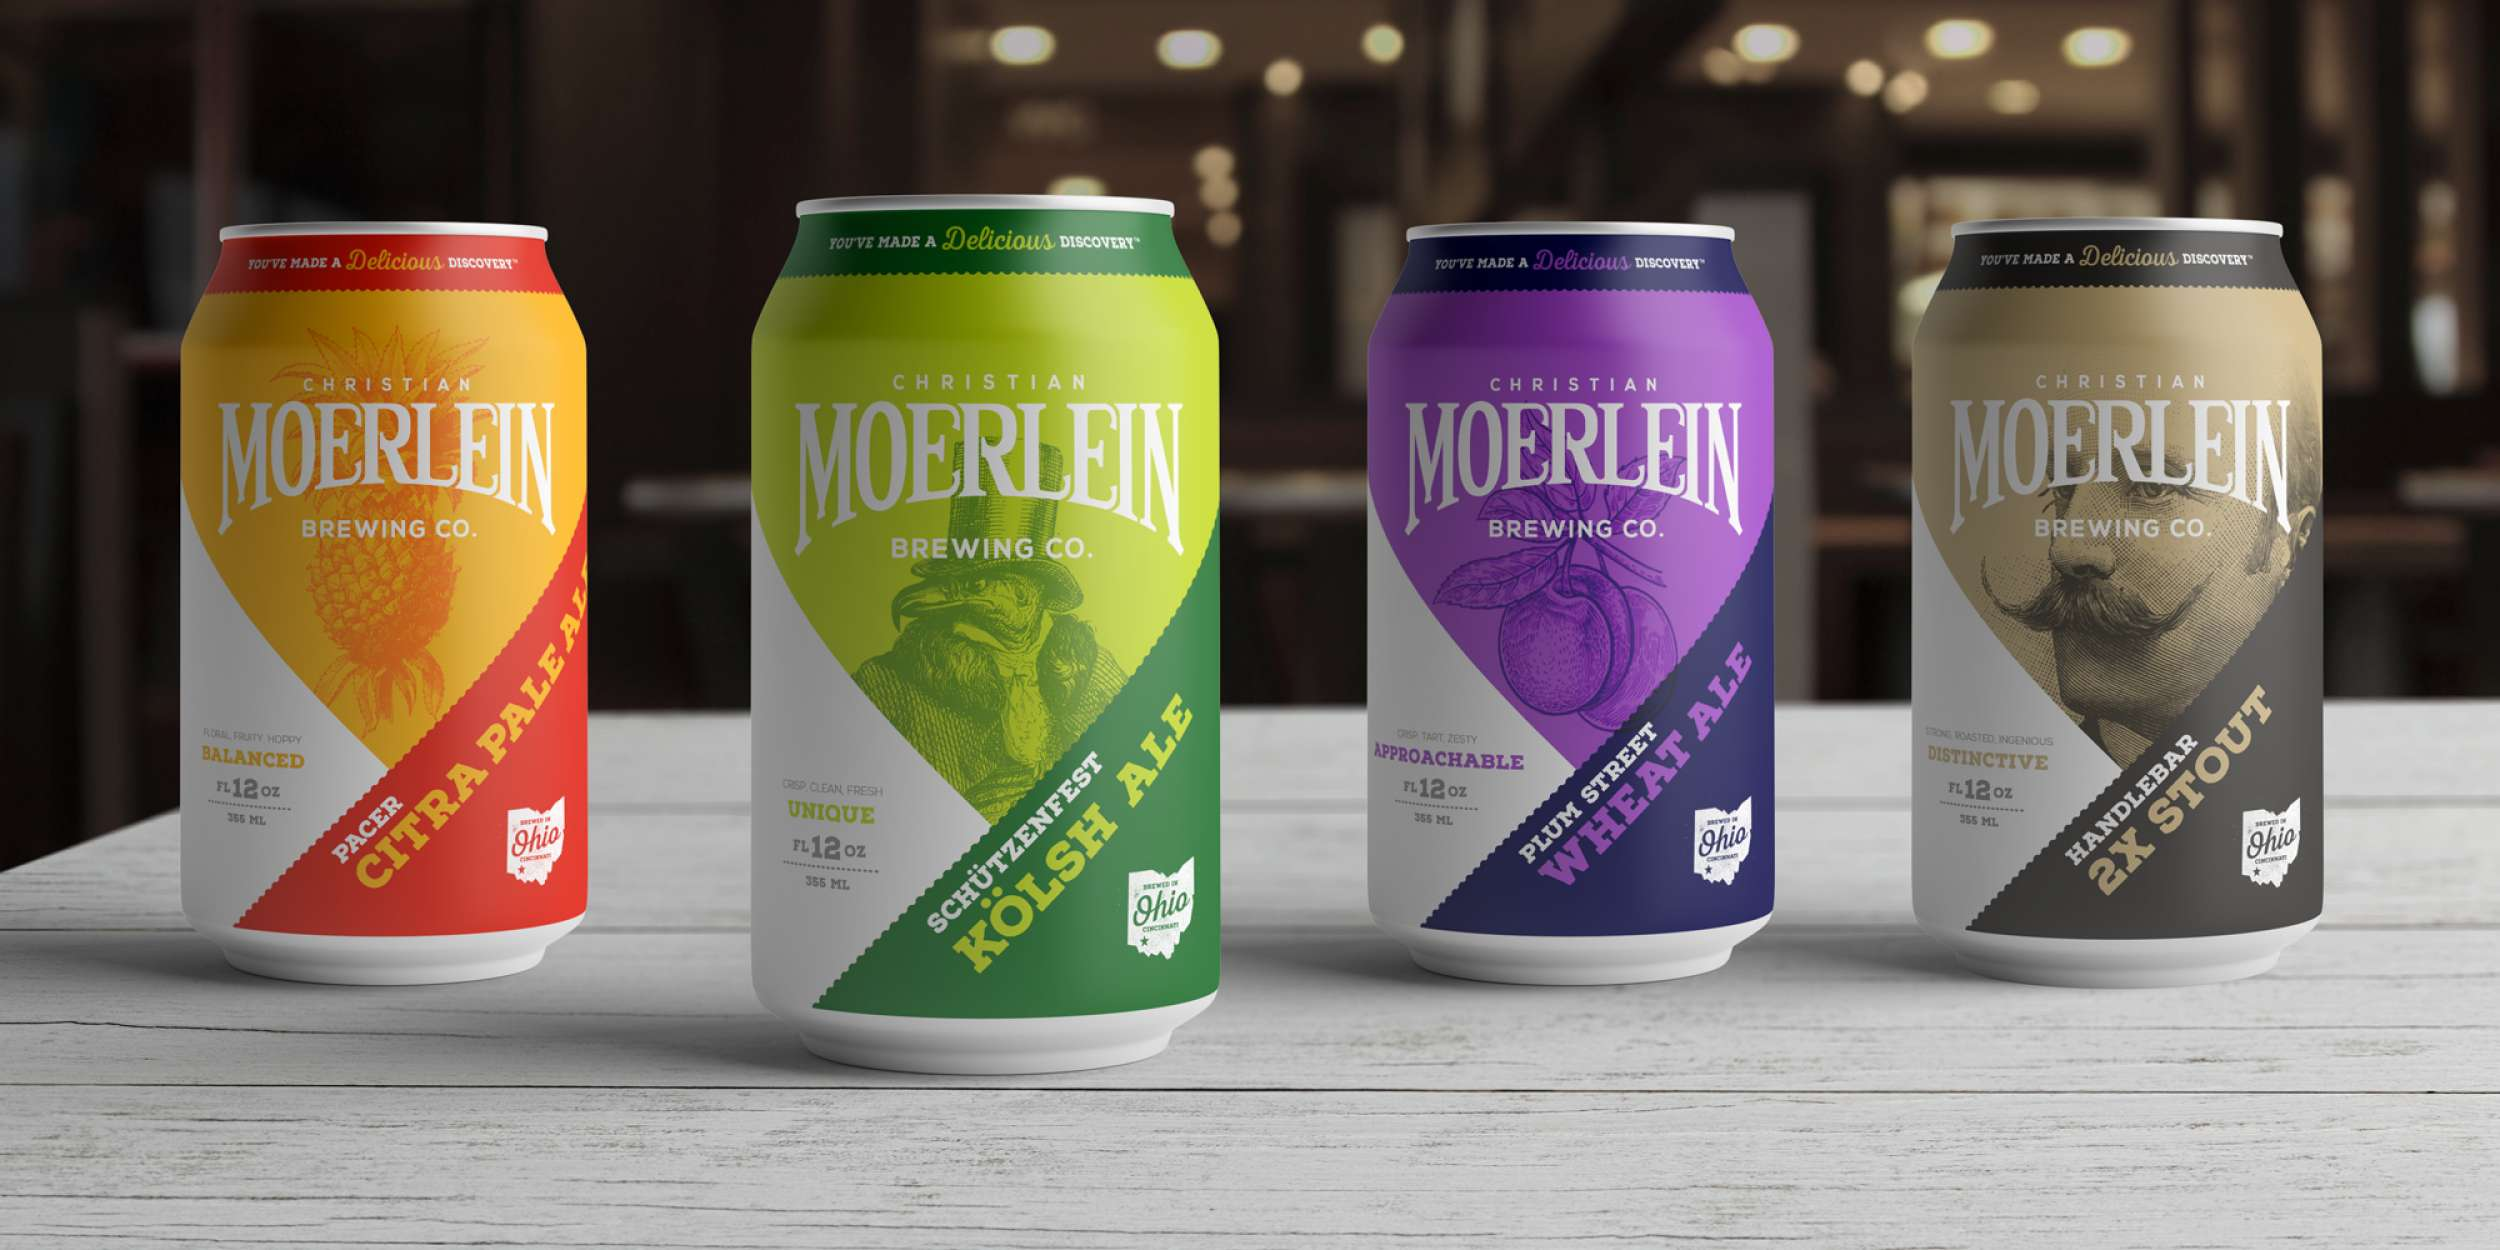 branding agency in cincinnati Moerlein proposed design